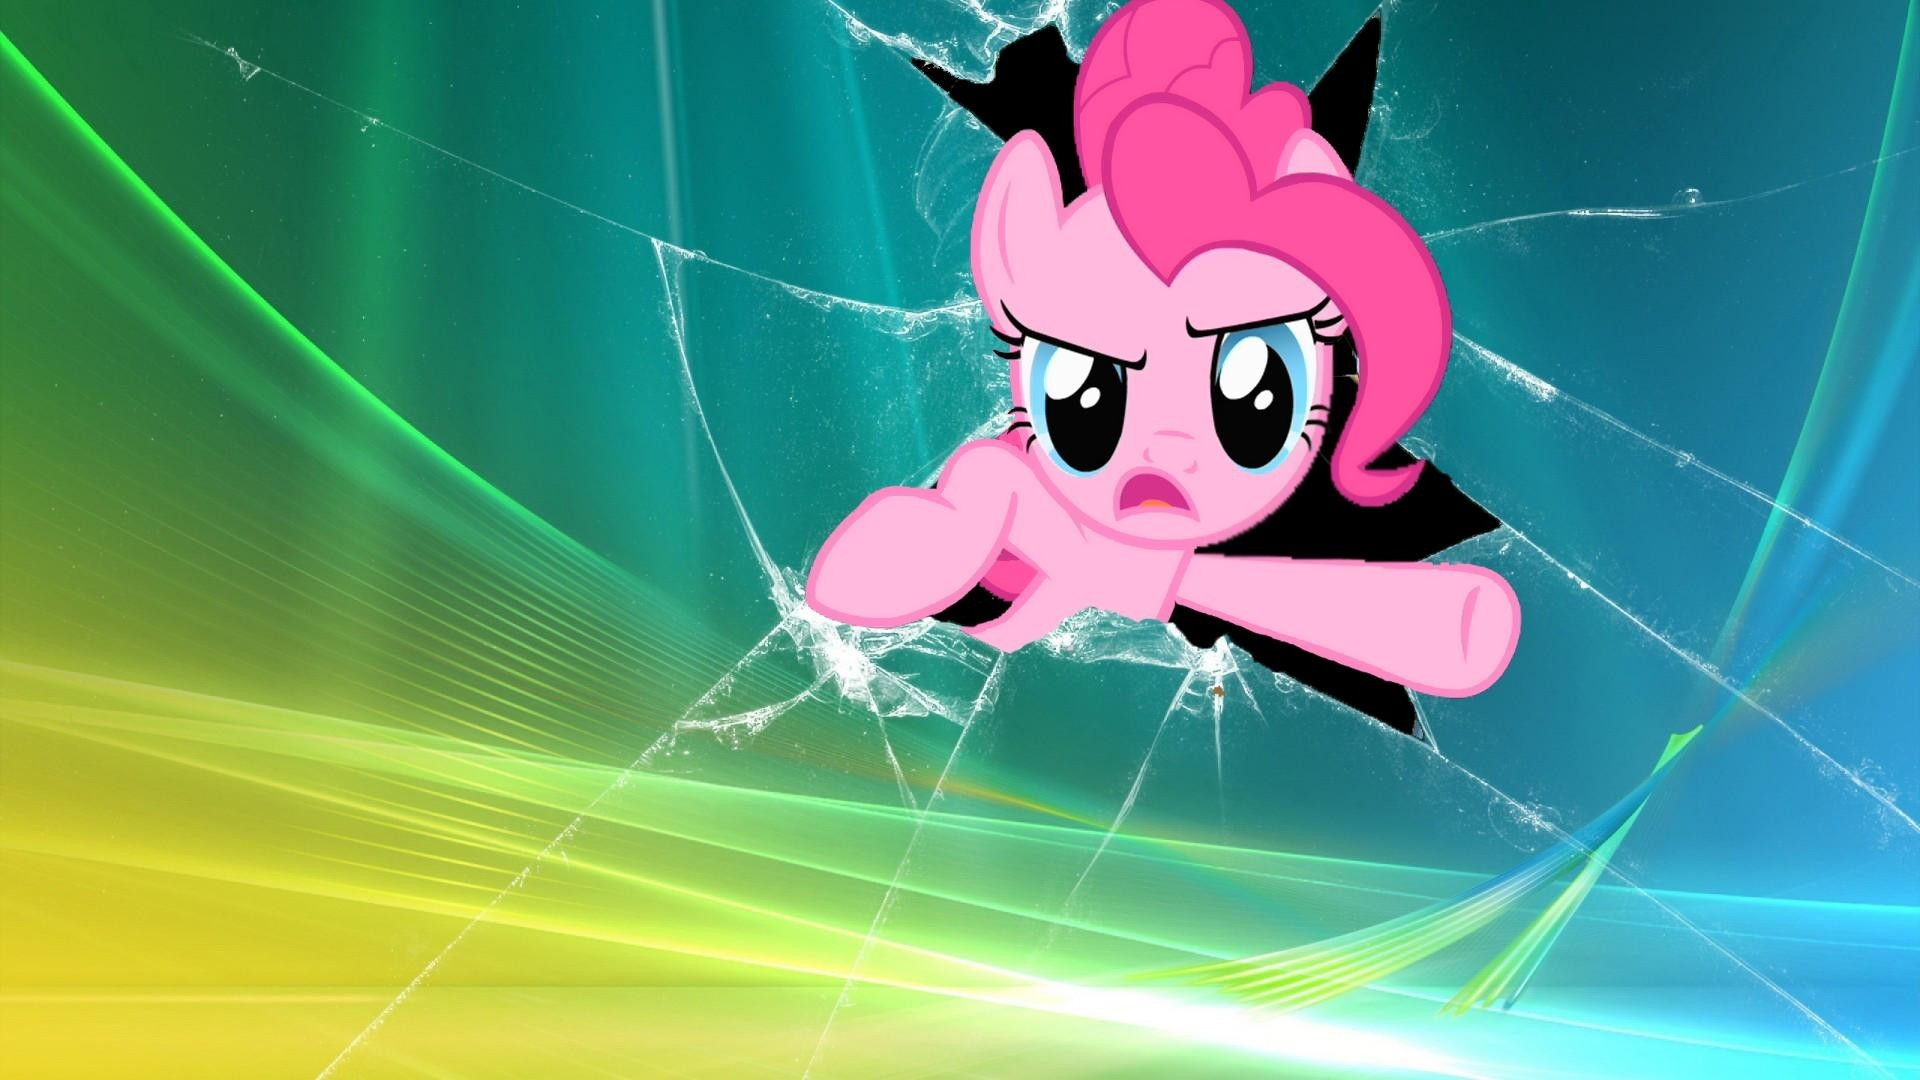 1920x1080 Broken Screen Wallpaper  Broken Screen My Little Pony